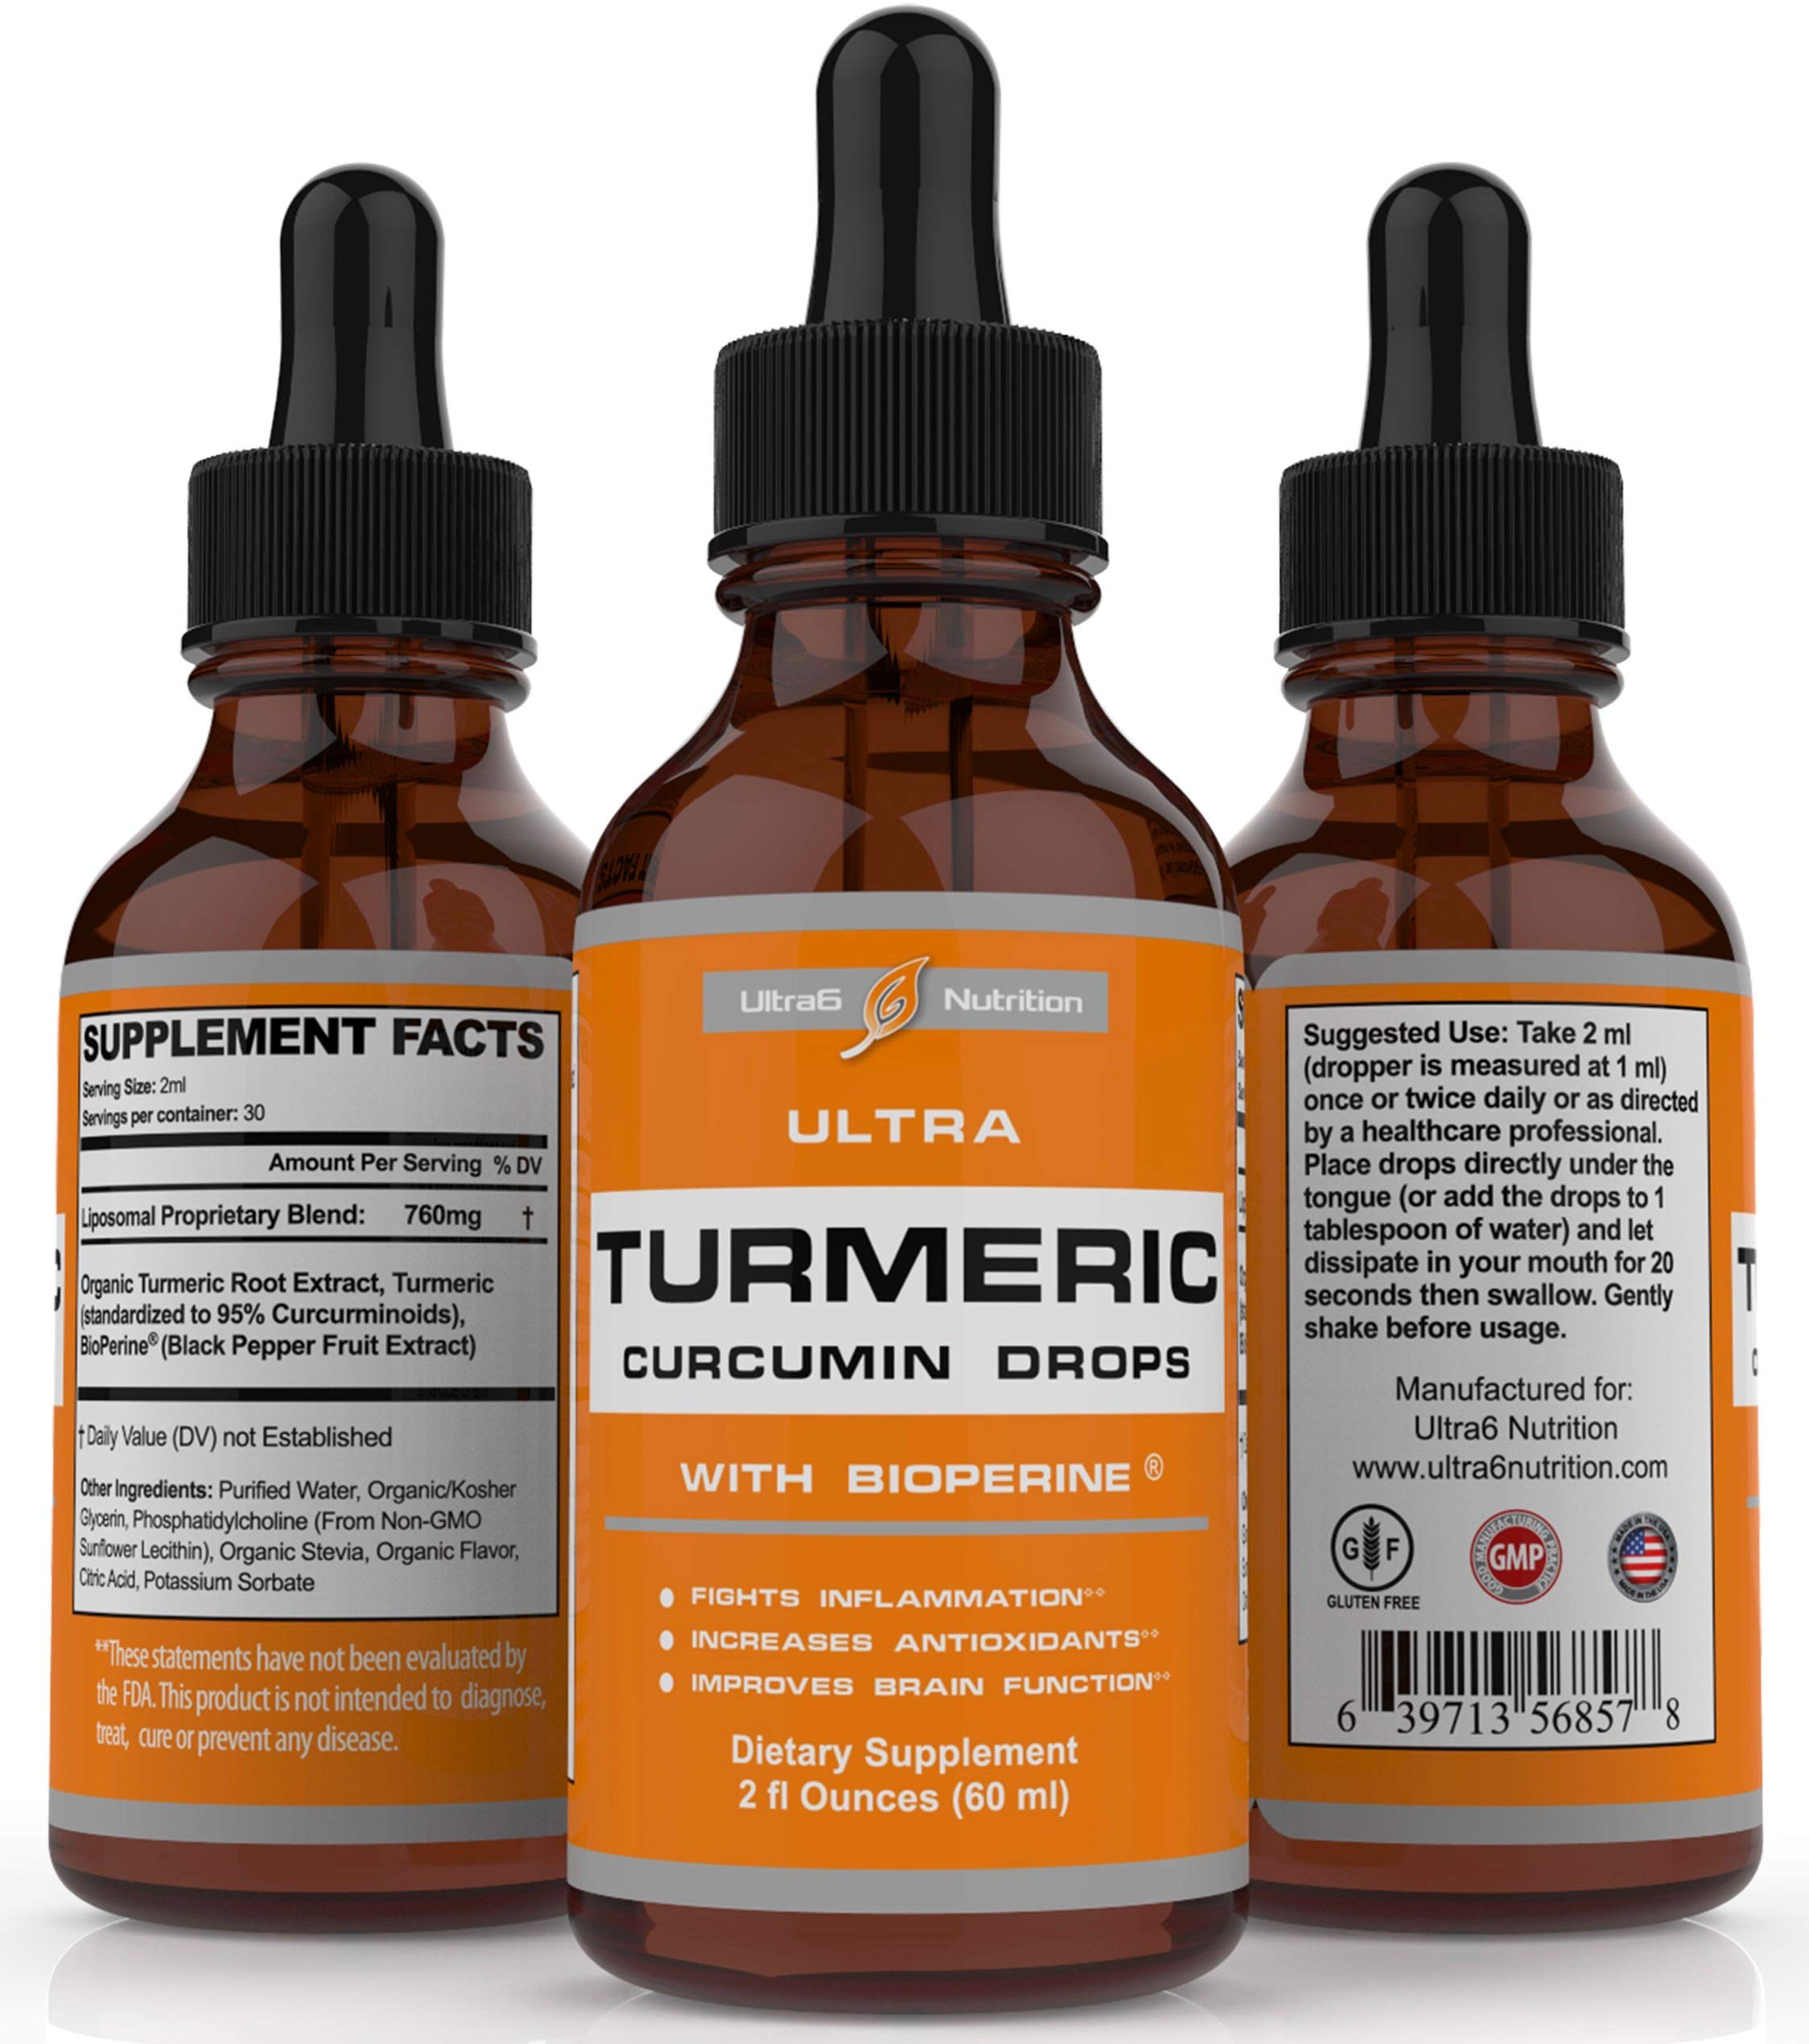 Turmeric Curcumin Drops with Bioperine Black Pepper Fruit Extract via Liquid Tincture for Best Absorption and Organic. Fights Joint Pain + Inflammation Support